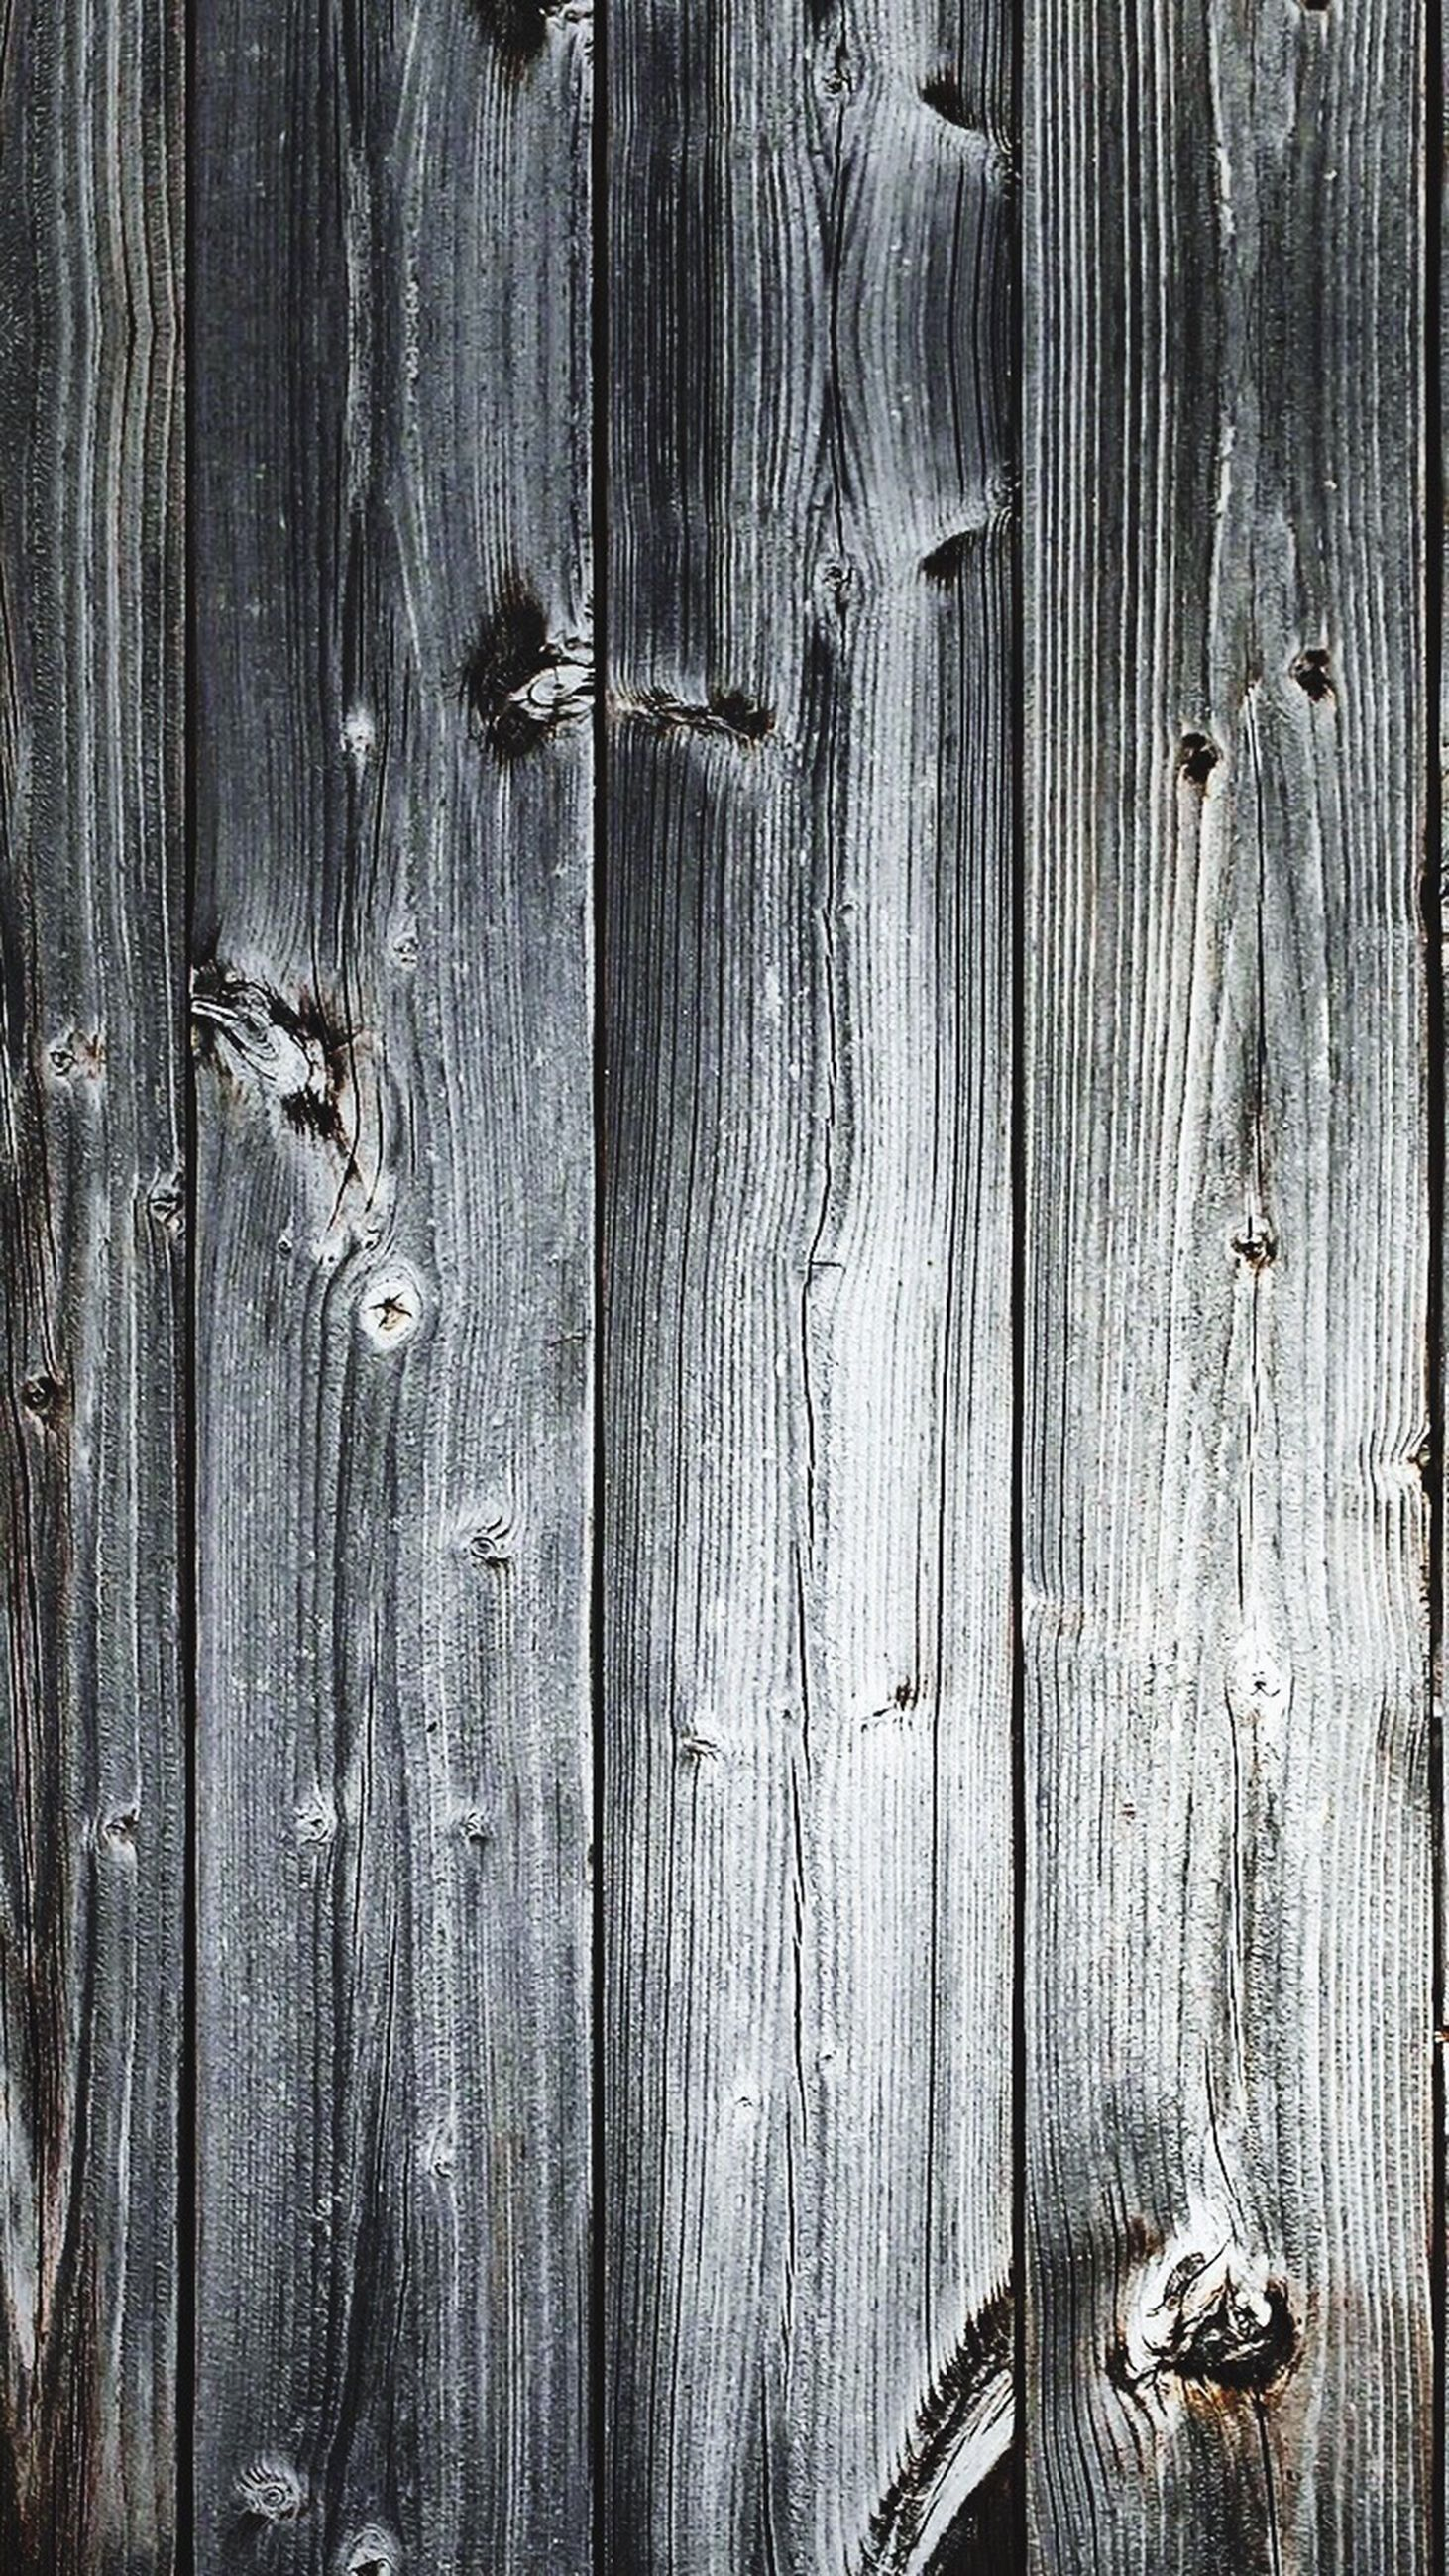 full frame, backgrounds, wooden, wood - material, plank, old, wood, door, weathered, close-up, textured, damaged, deterioration, timber, bad condition, wood paneling, obsolete